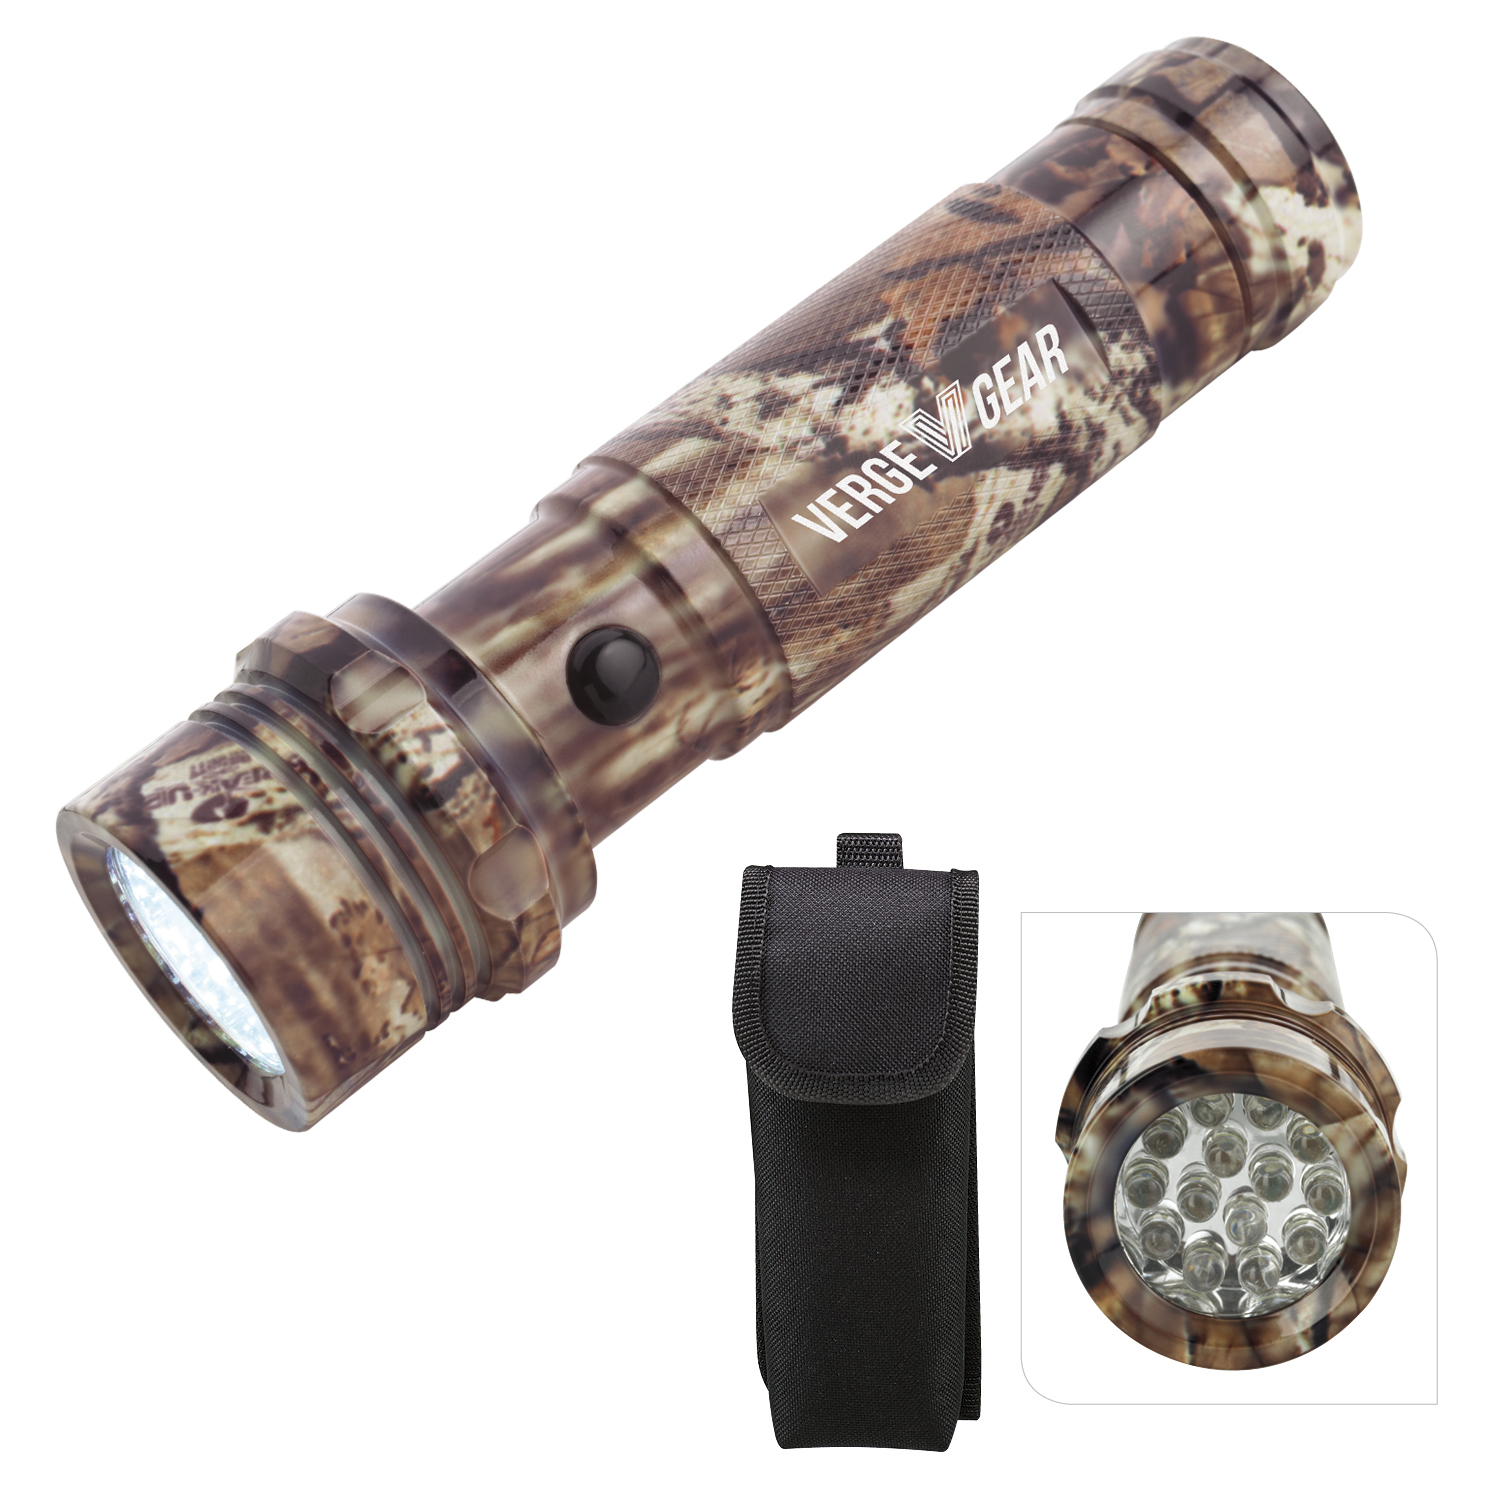 Mossy Oak Camouflage Aluminum LED Flashlight - Laser Engraved Imprint